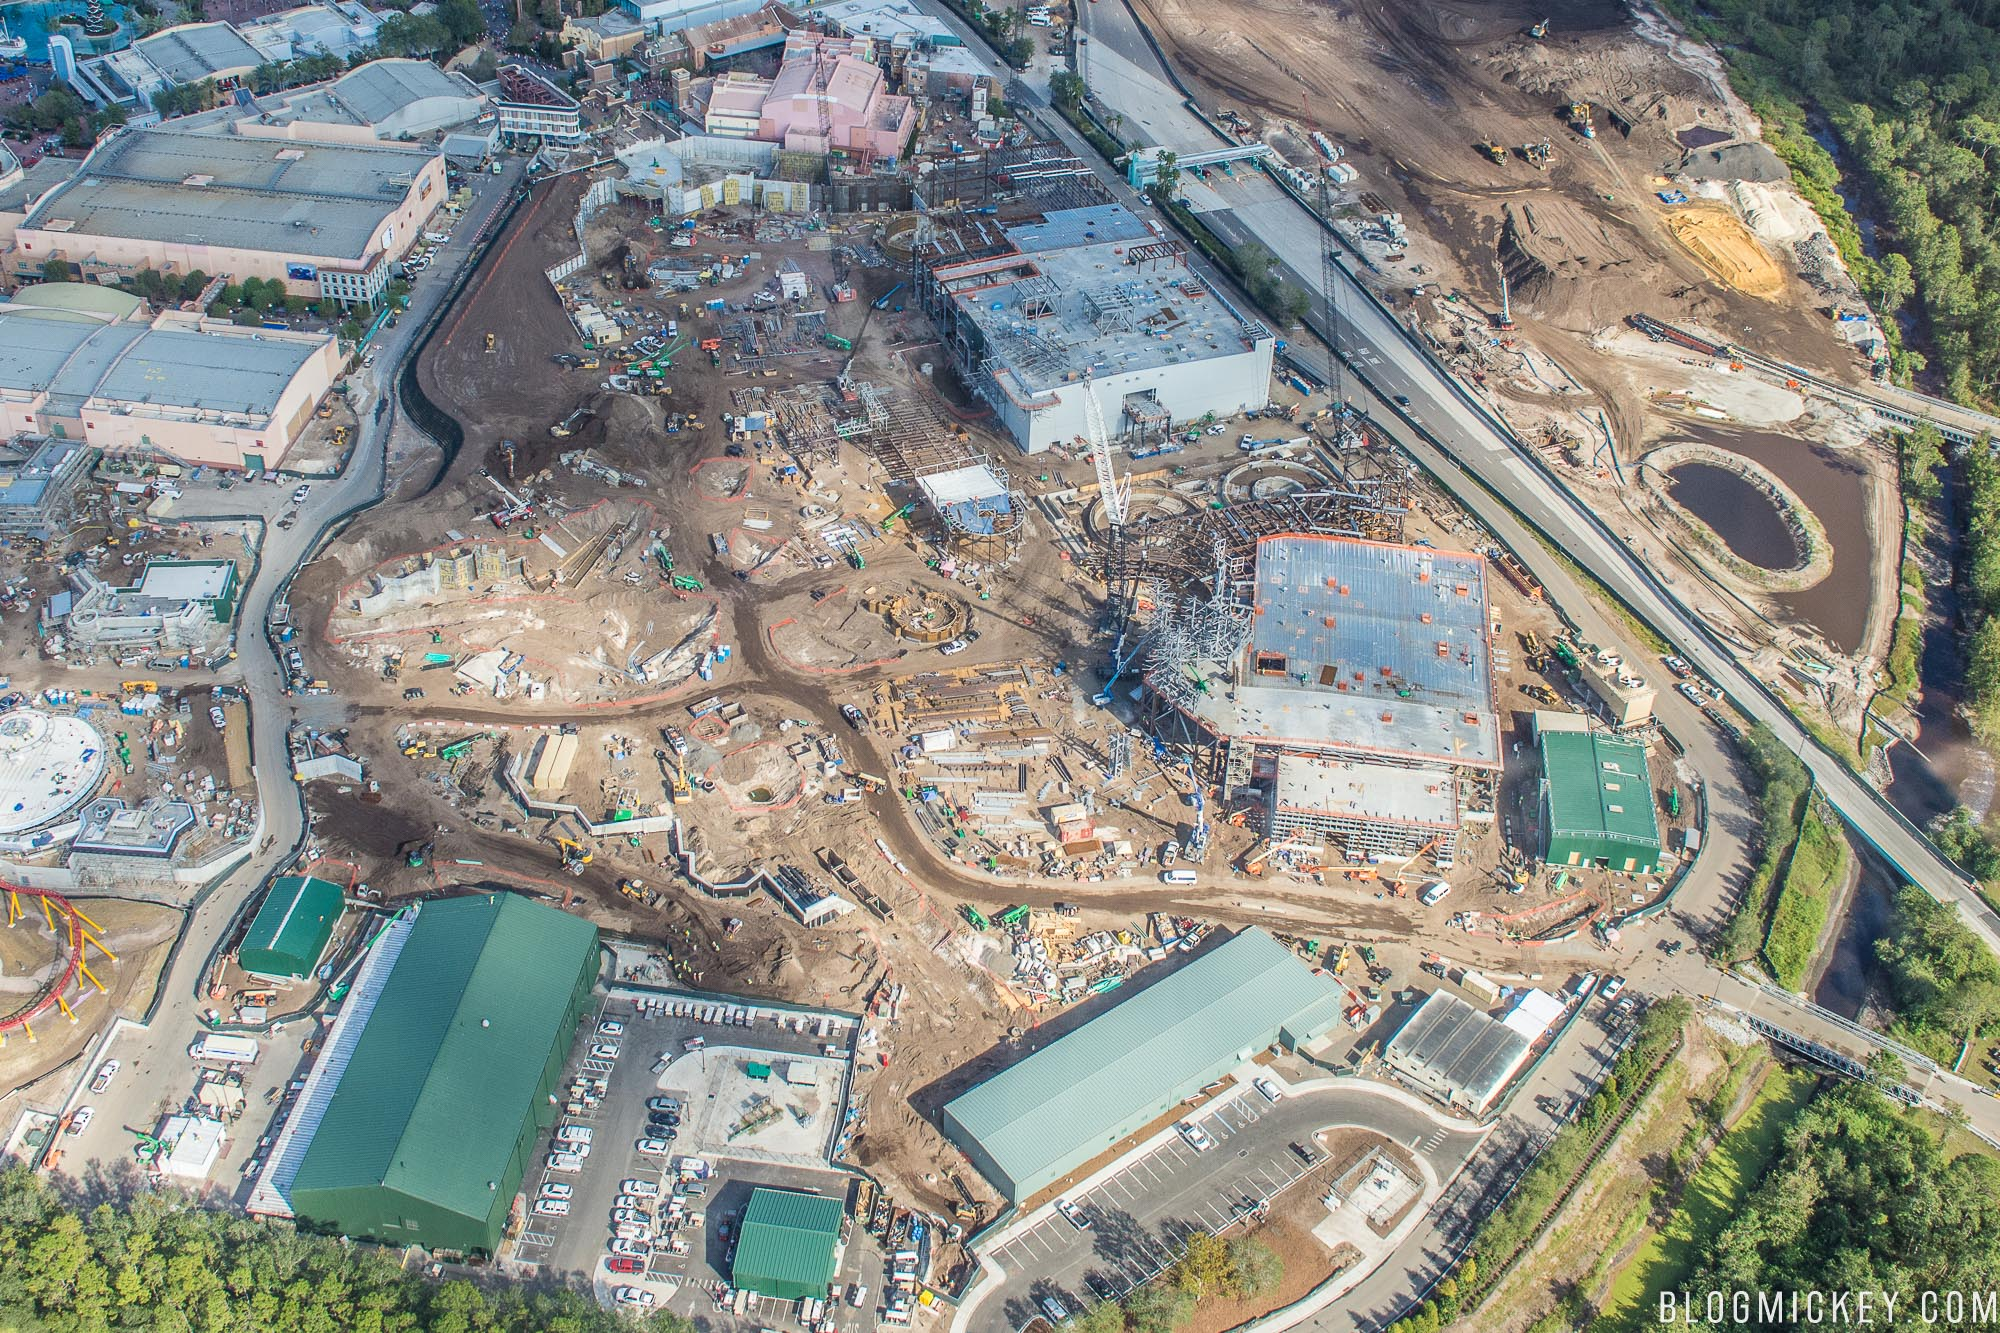 Star Wars at Disney, Construction Updates